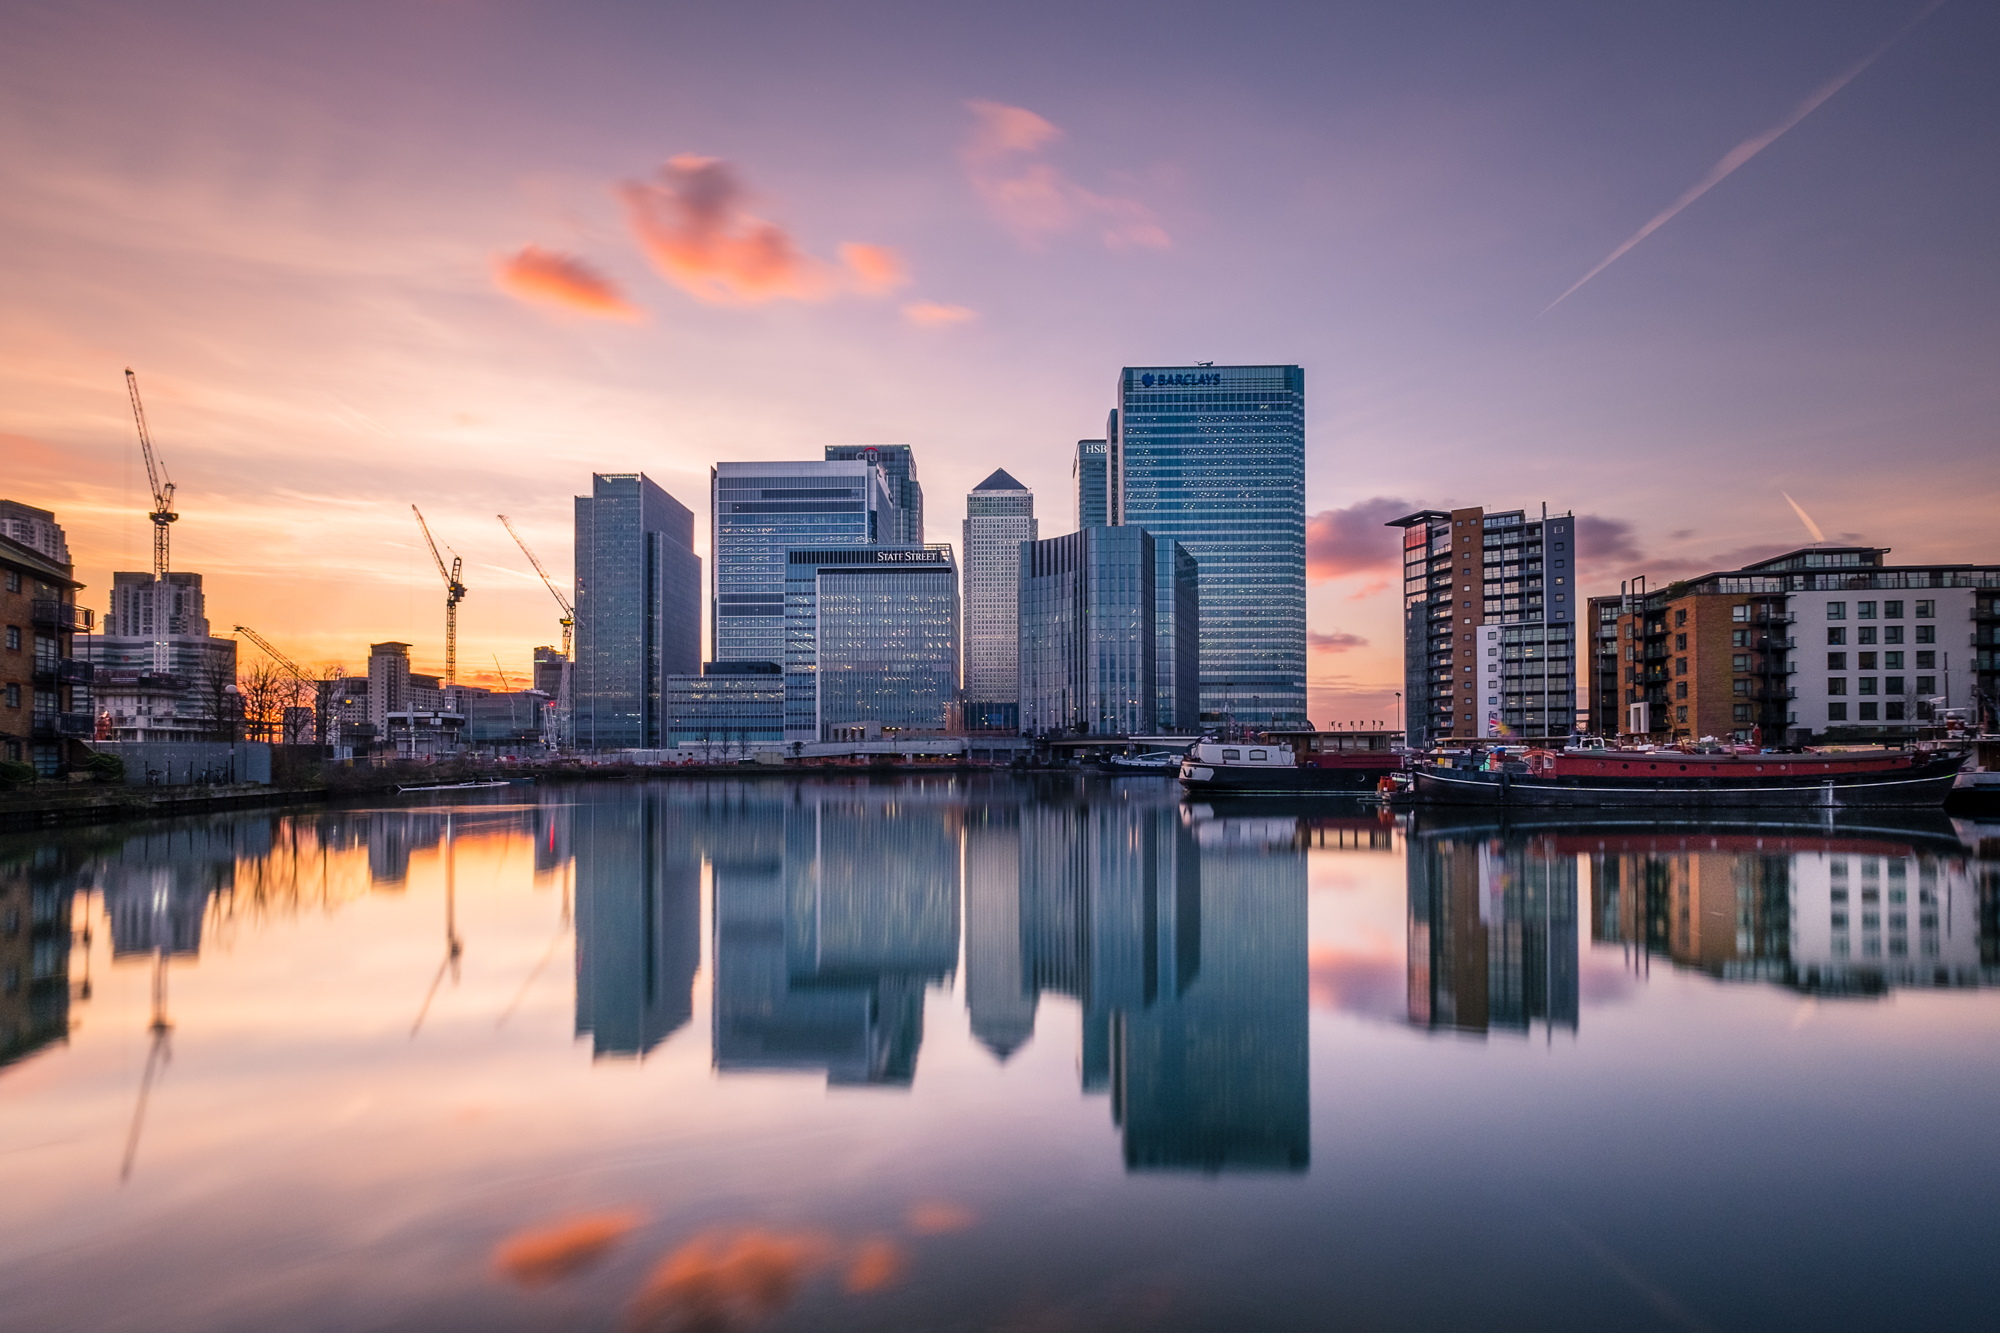 Photograph of the Sunset at Canary Wharf taken by Trevor Sherwin